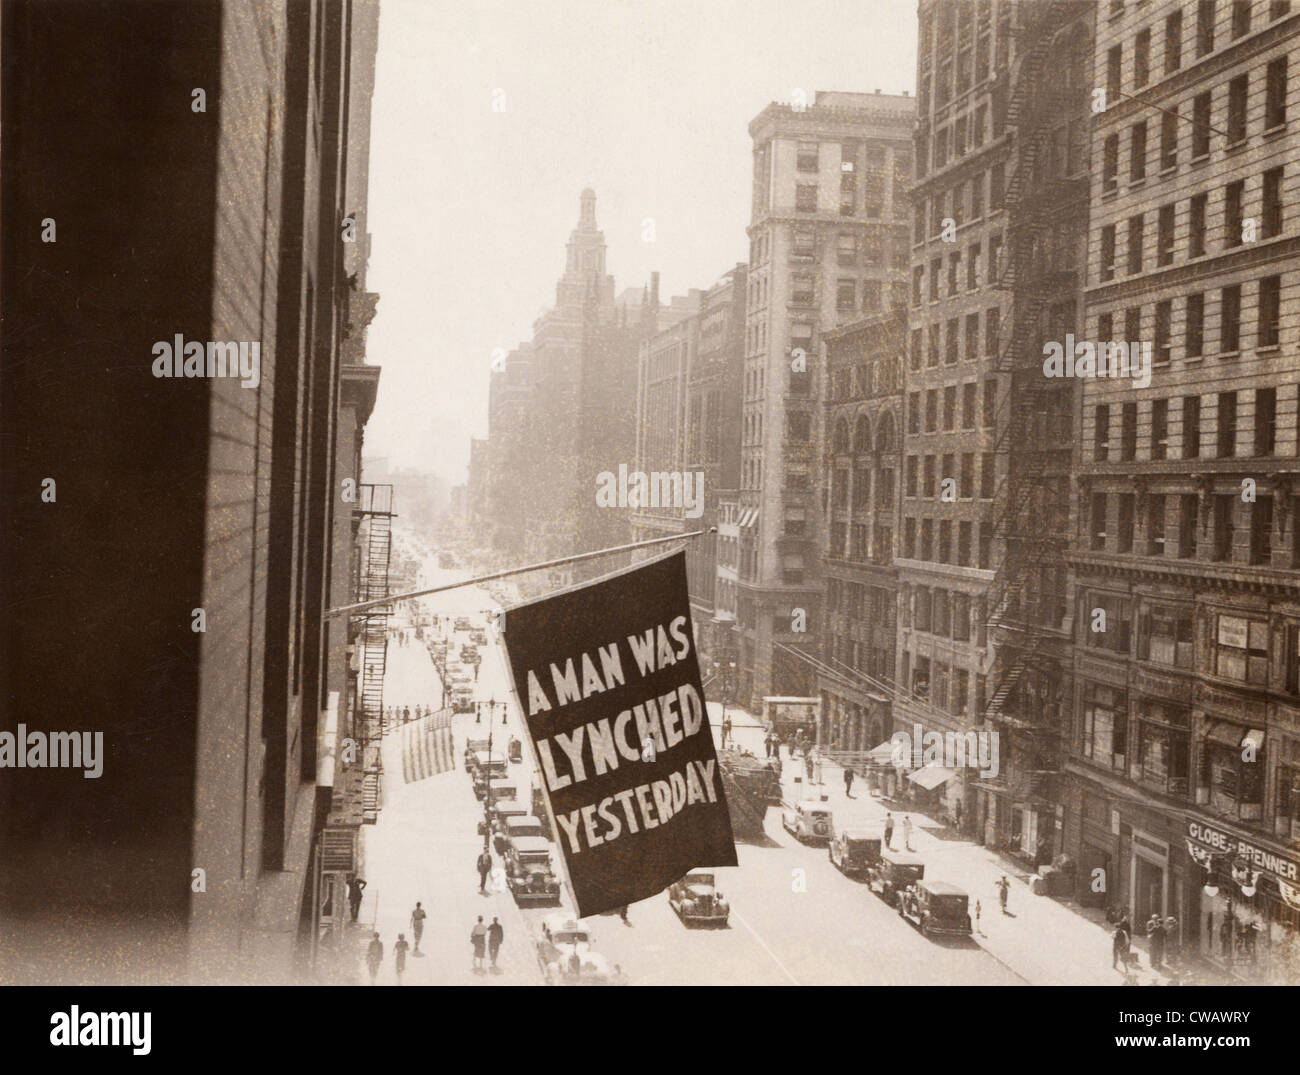 Flag announcing another lynching. 'A MAN WAS LYNCHED YESTERDAY,' is flown from the window of the NAACP headquarters - Stock Image